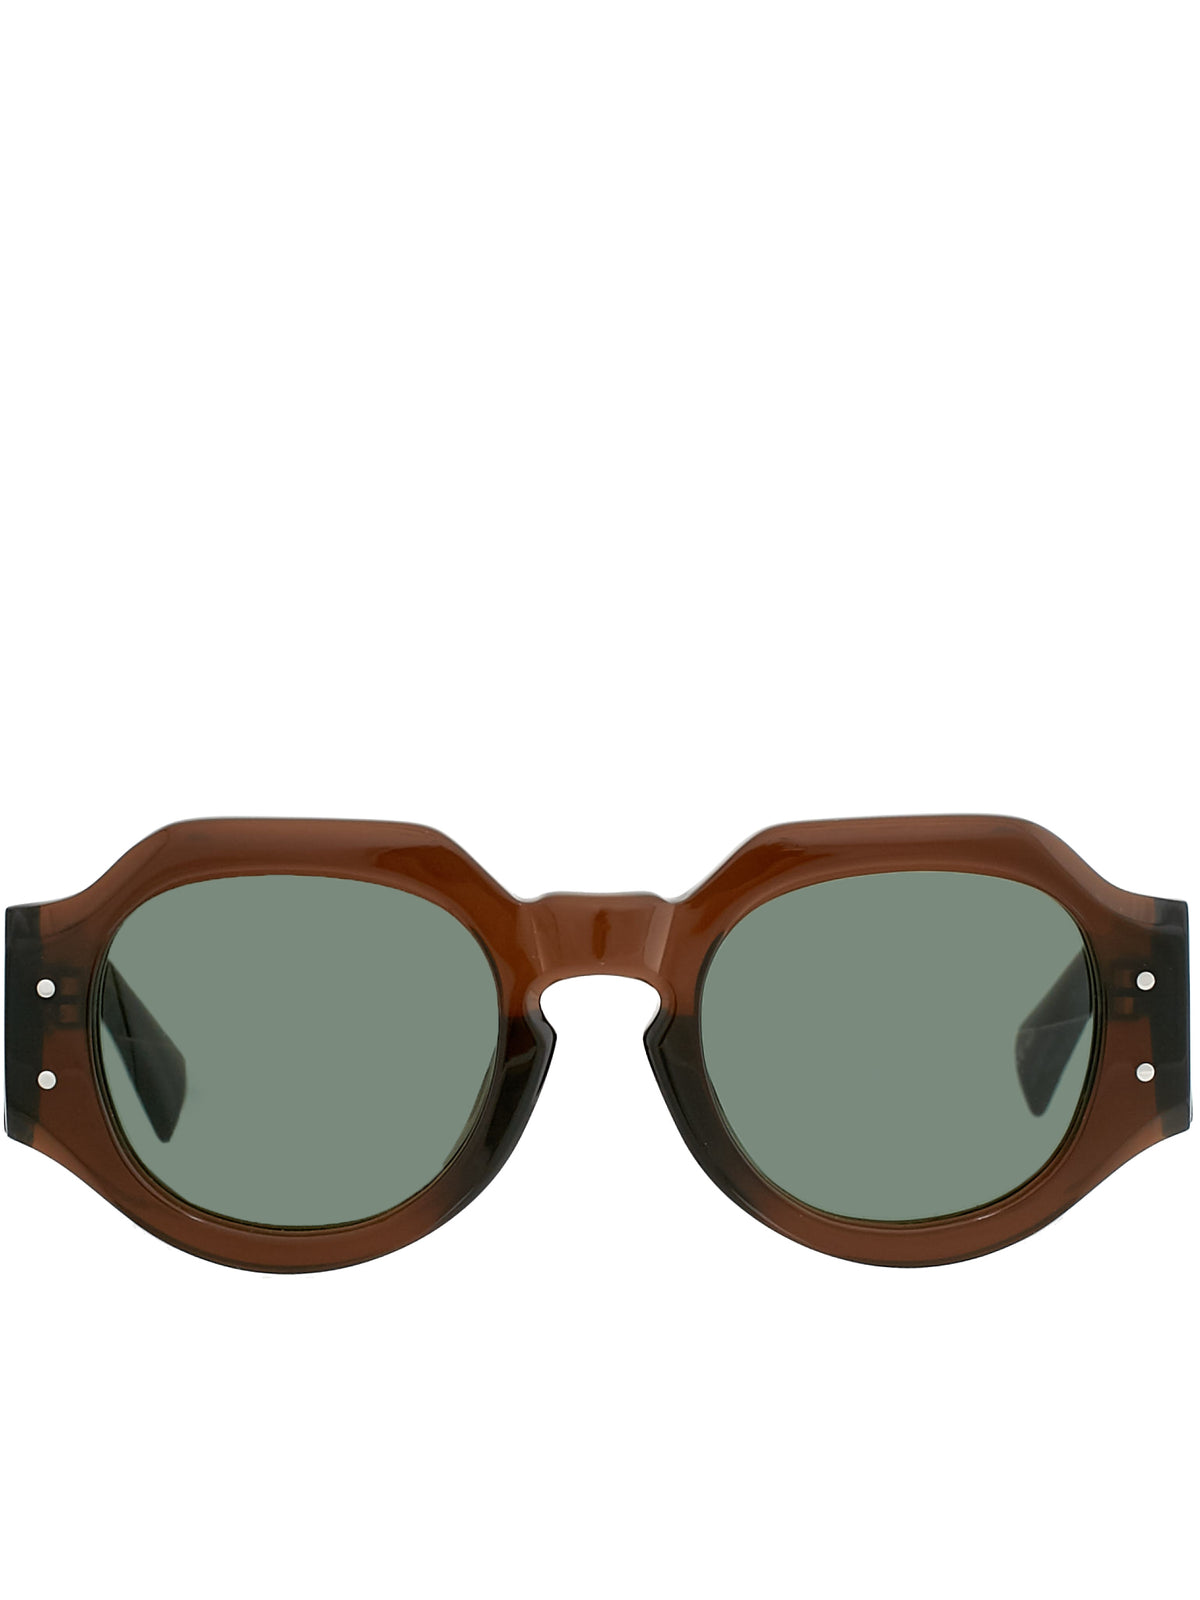 'Dries Van Noten 174 C4 Angular Sunglasses' (DVN174C4SUN-BROWN-MG-GREEN)